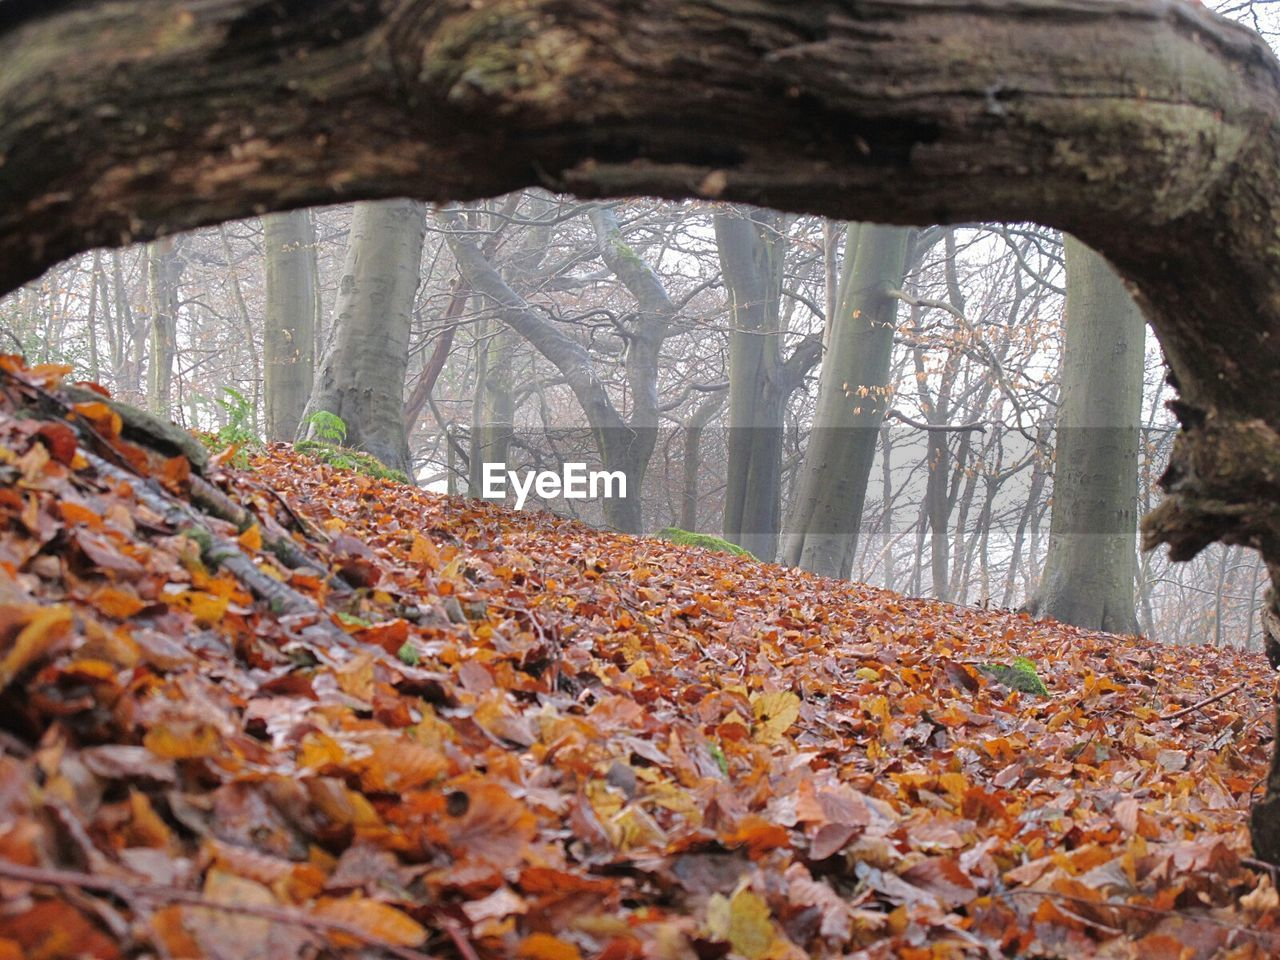 autumn, leaf, change, nature, forest, tree, day, beauty in nature, outdoors, no people, tree trunk, scenics, tranquility, branch, the way forward, close-up